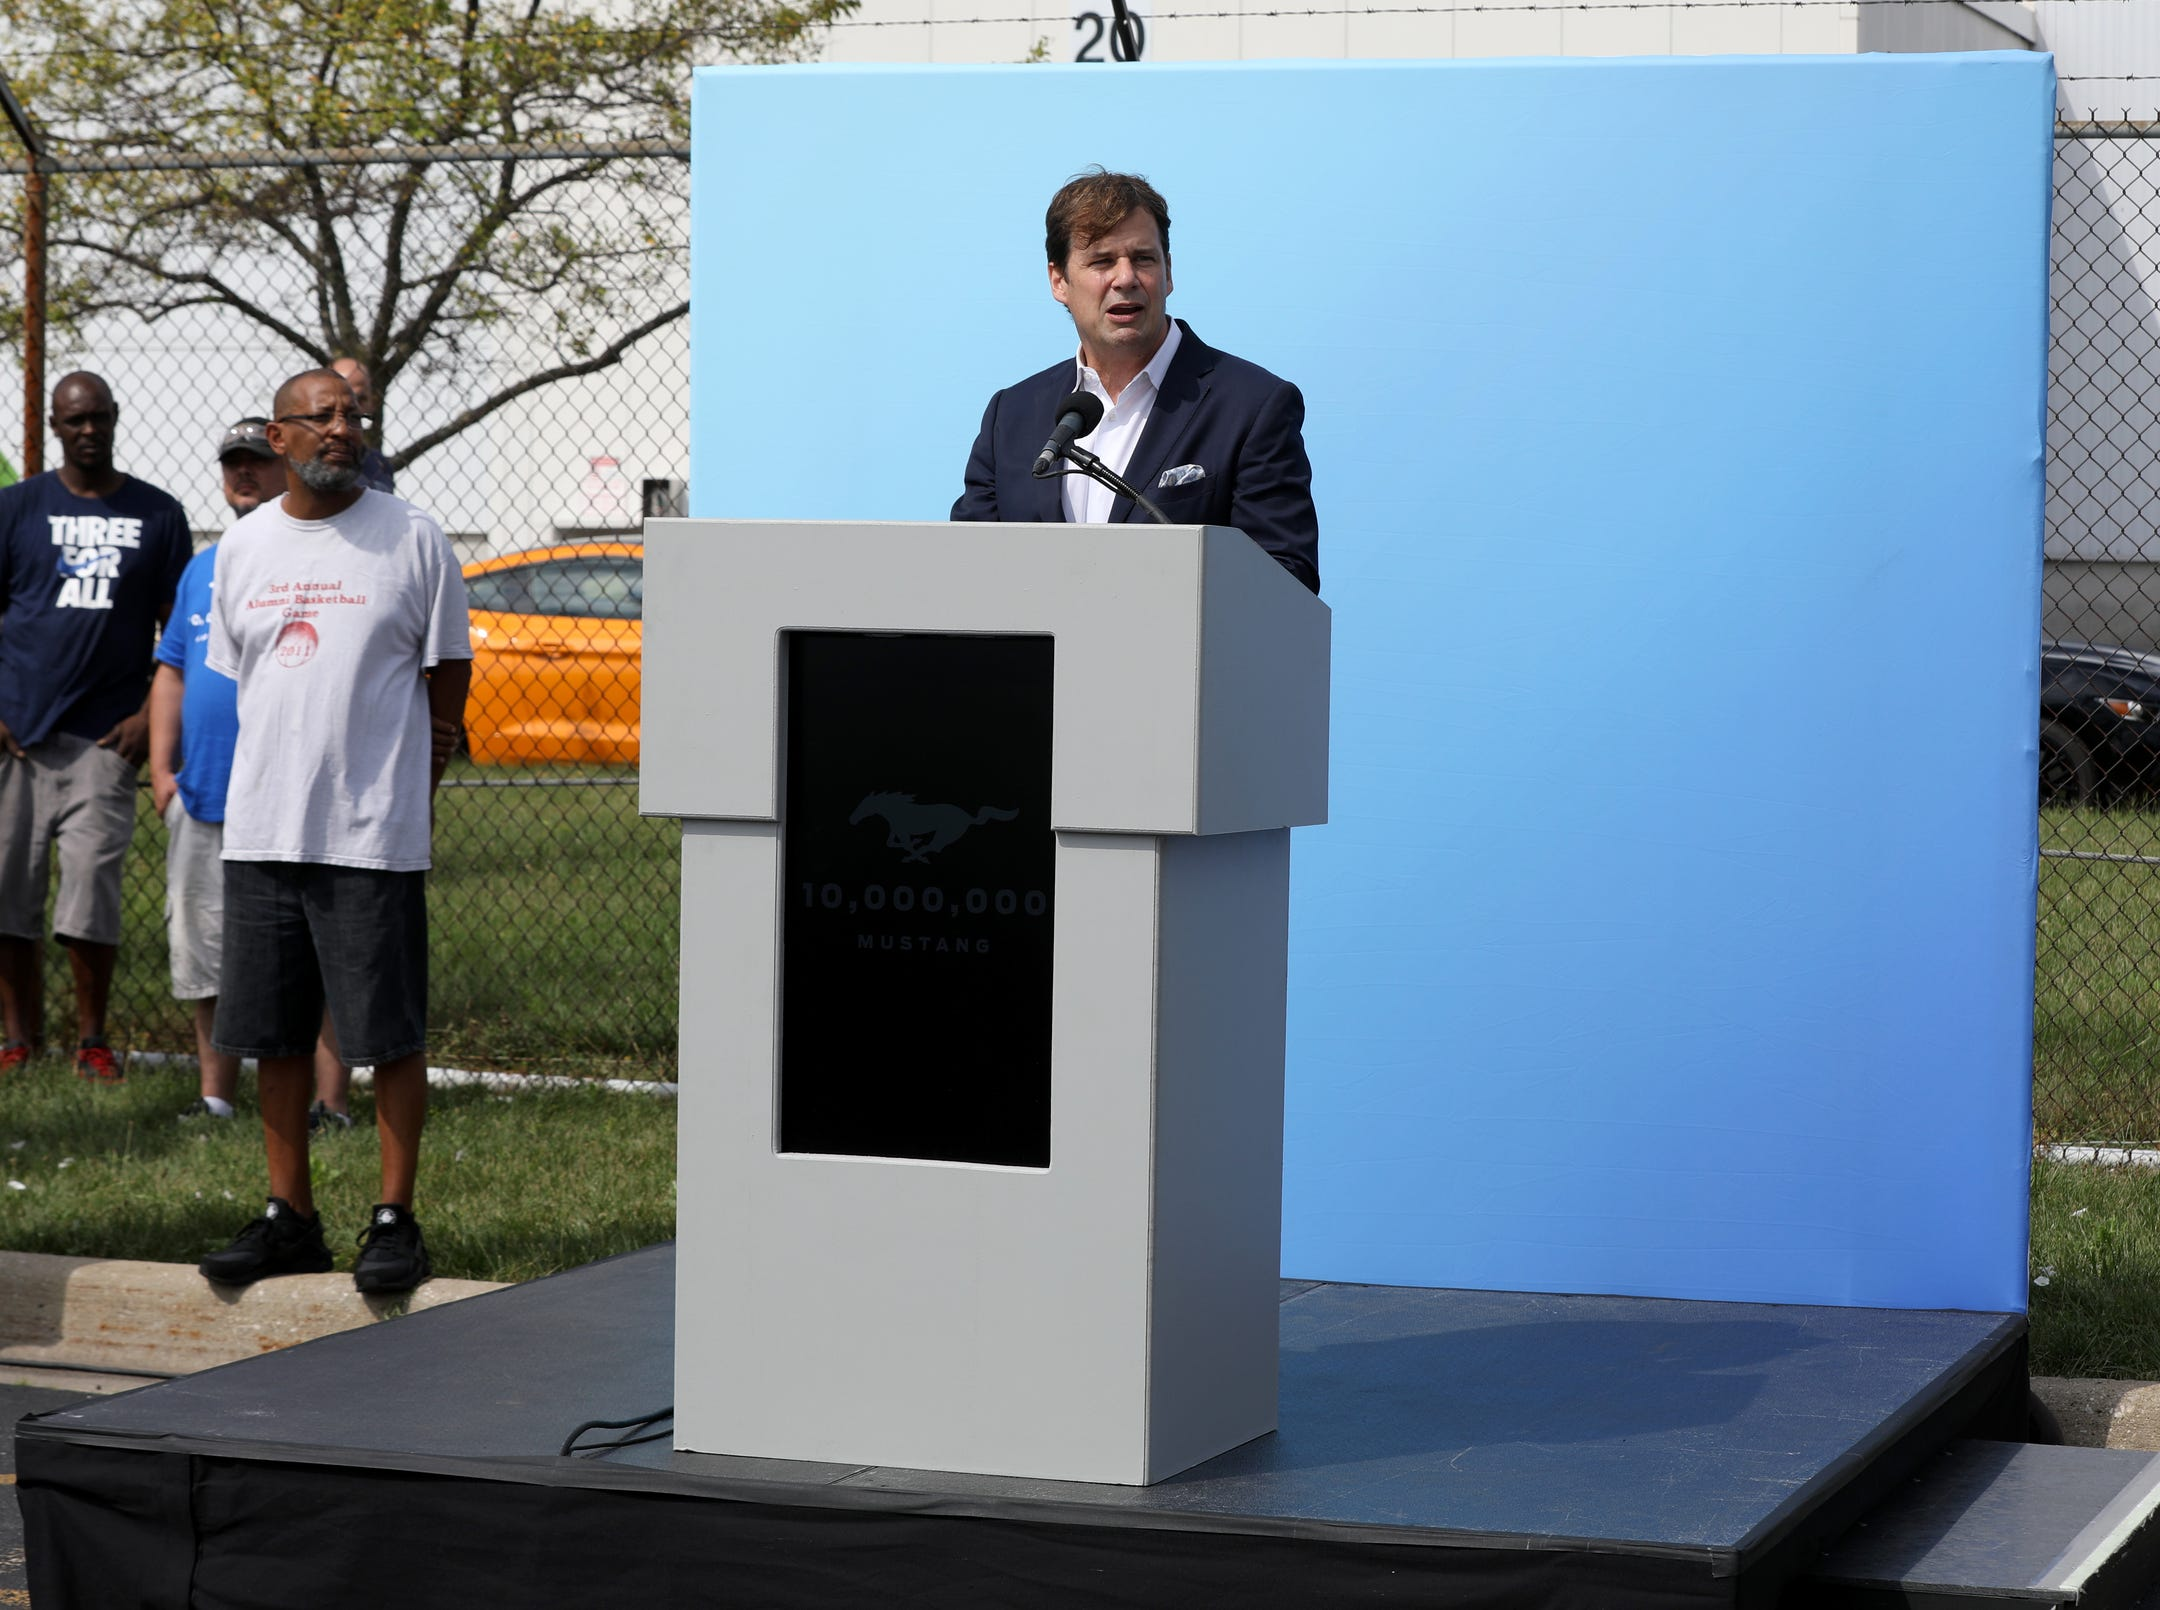 Jim Farley, president of global markets for Ford Motor Company speaks to workers from the Flat Rock Assembly Plant during the celebration of the 10 millionth Mustang built by the Ford Motor Company in Flat Rock on Wednesday, August 8, 2018.